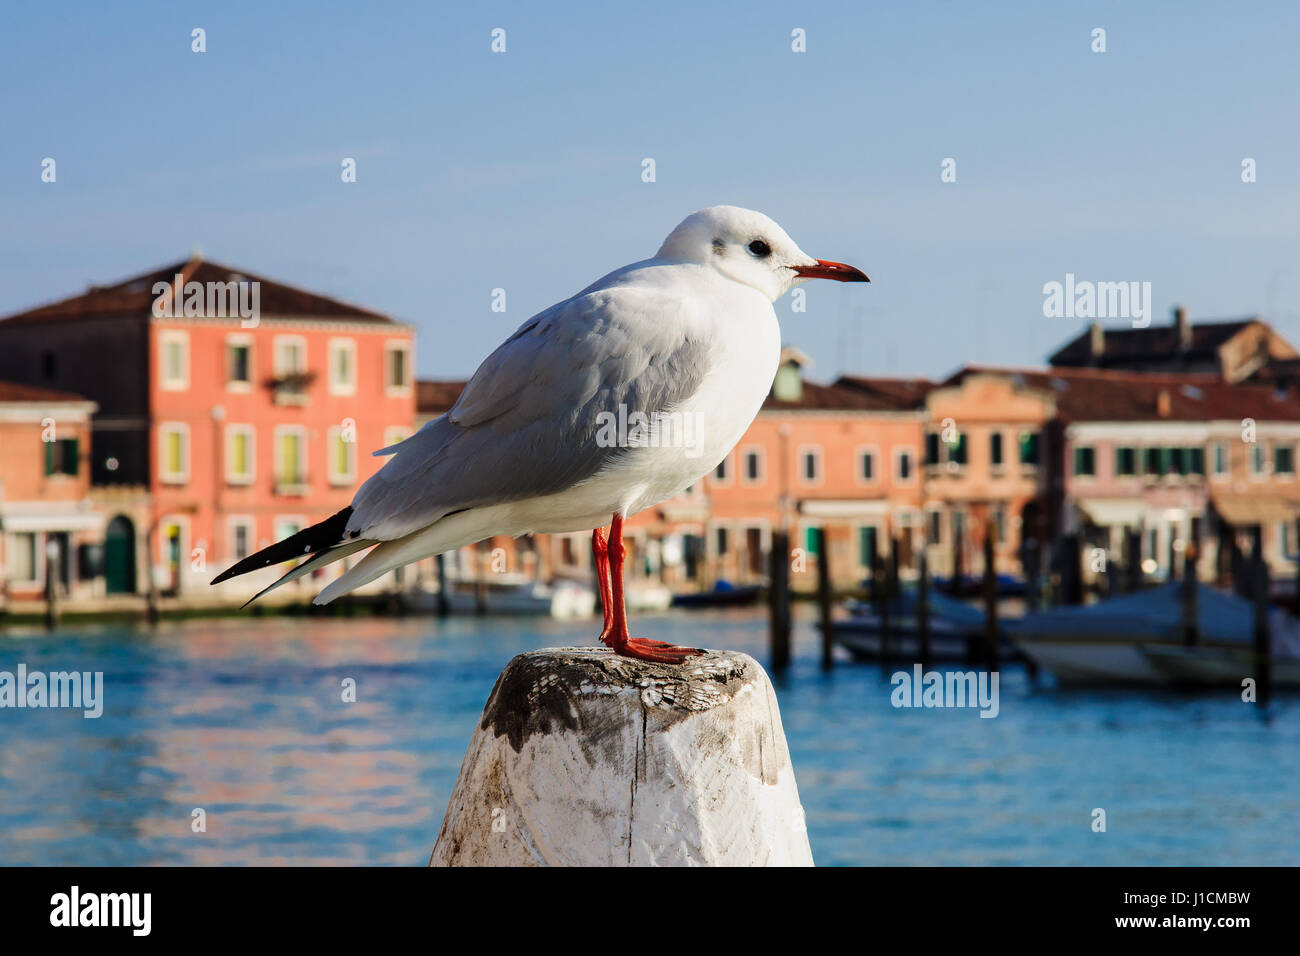 A seagull and a vaporetto (water bus) station, in Murano, Venice, Veneto, Italy - Stock Image